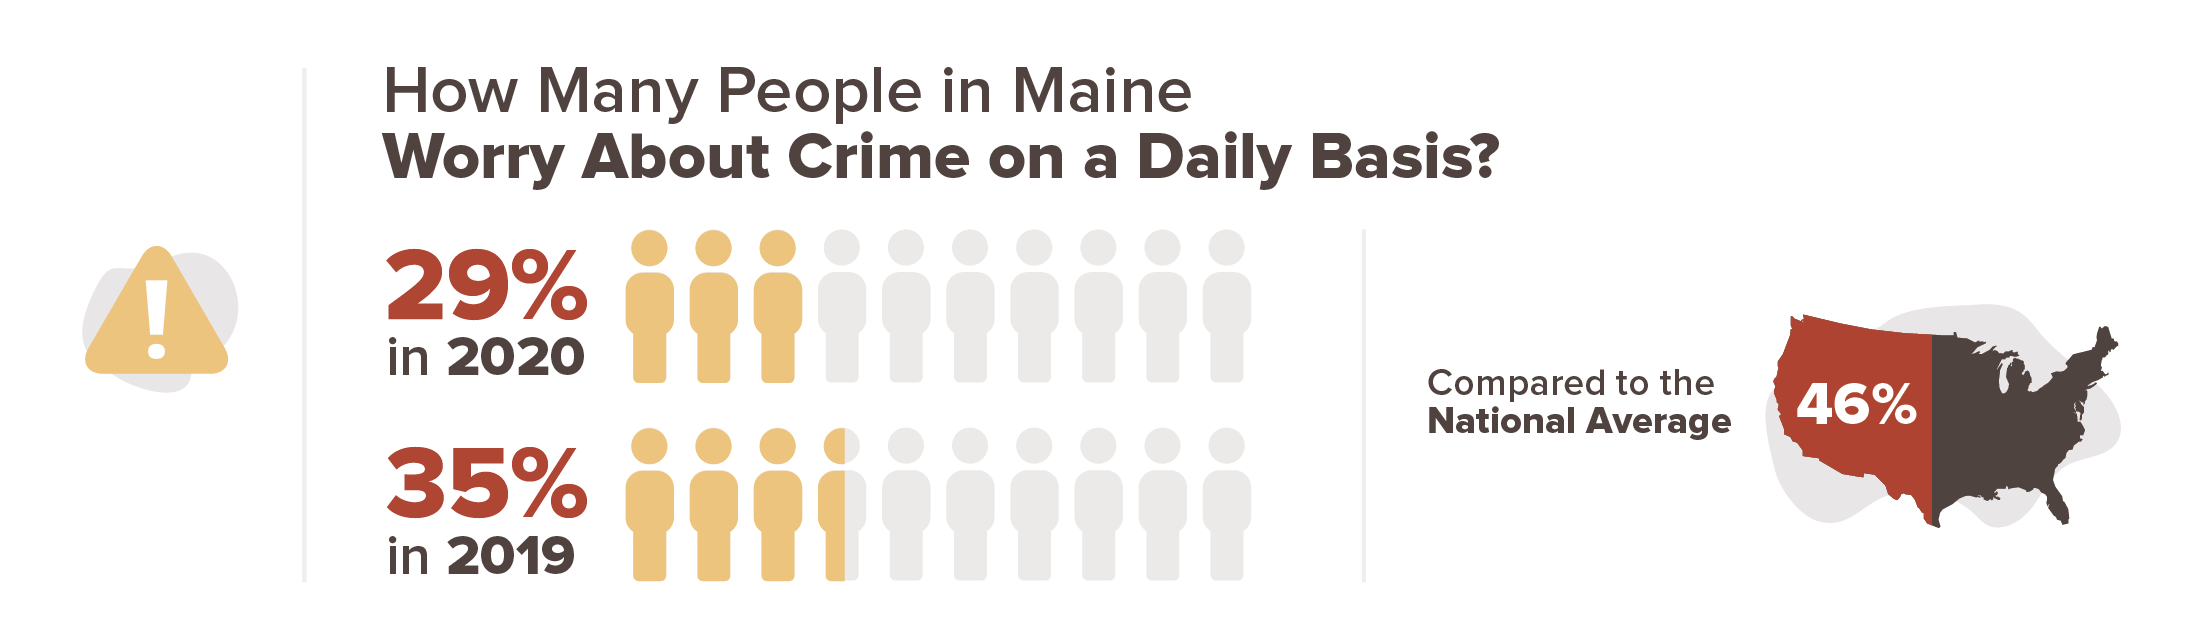 29% of people in Maine worry about crime on a daily basis in 2020 compared to 35% in 2019.